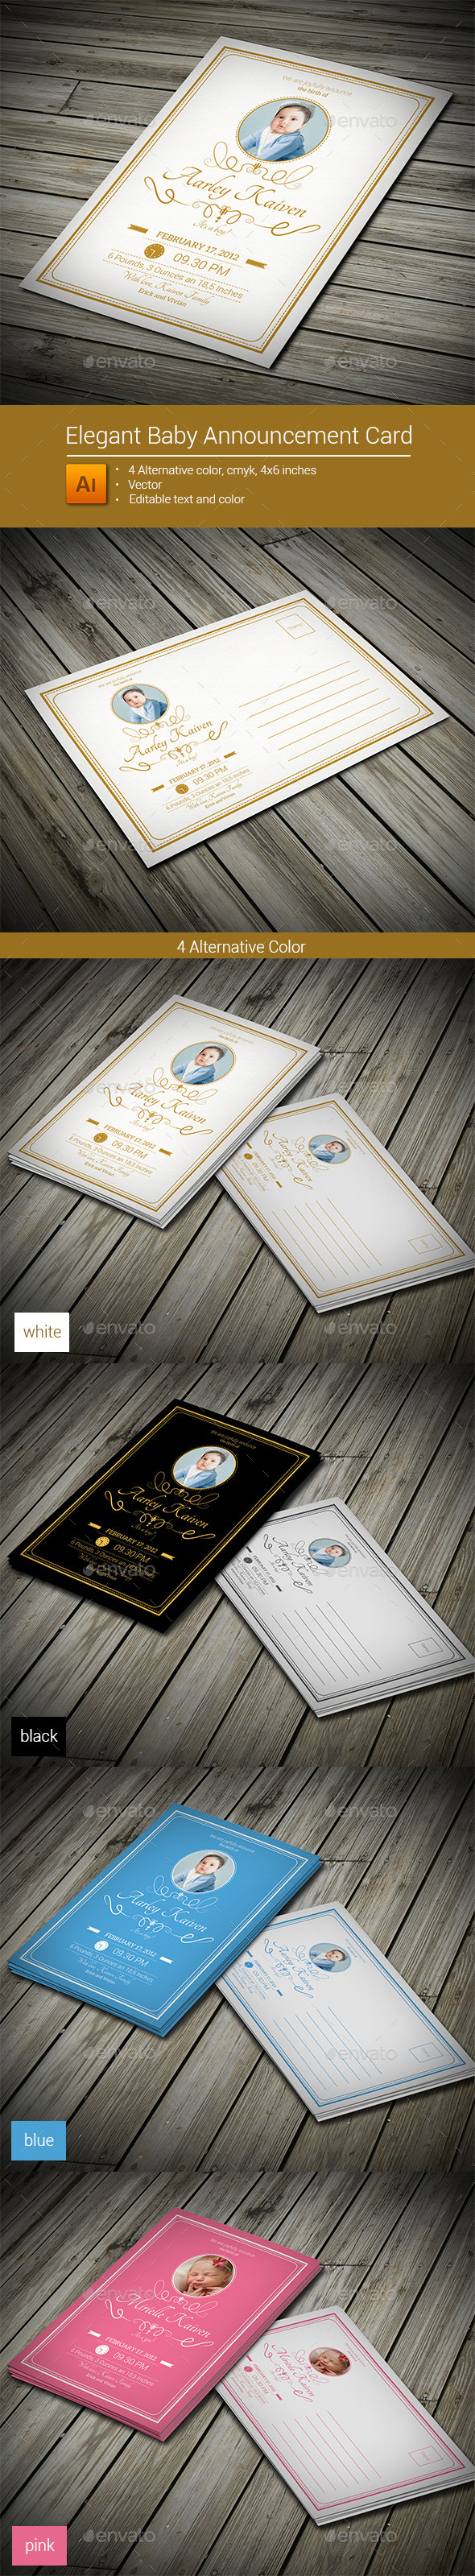 GraphicRiver Elegant Baby Announcement Card 9011252